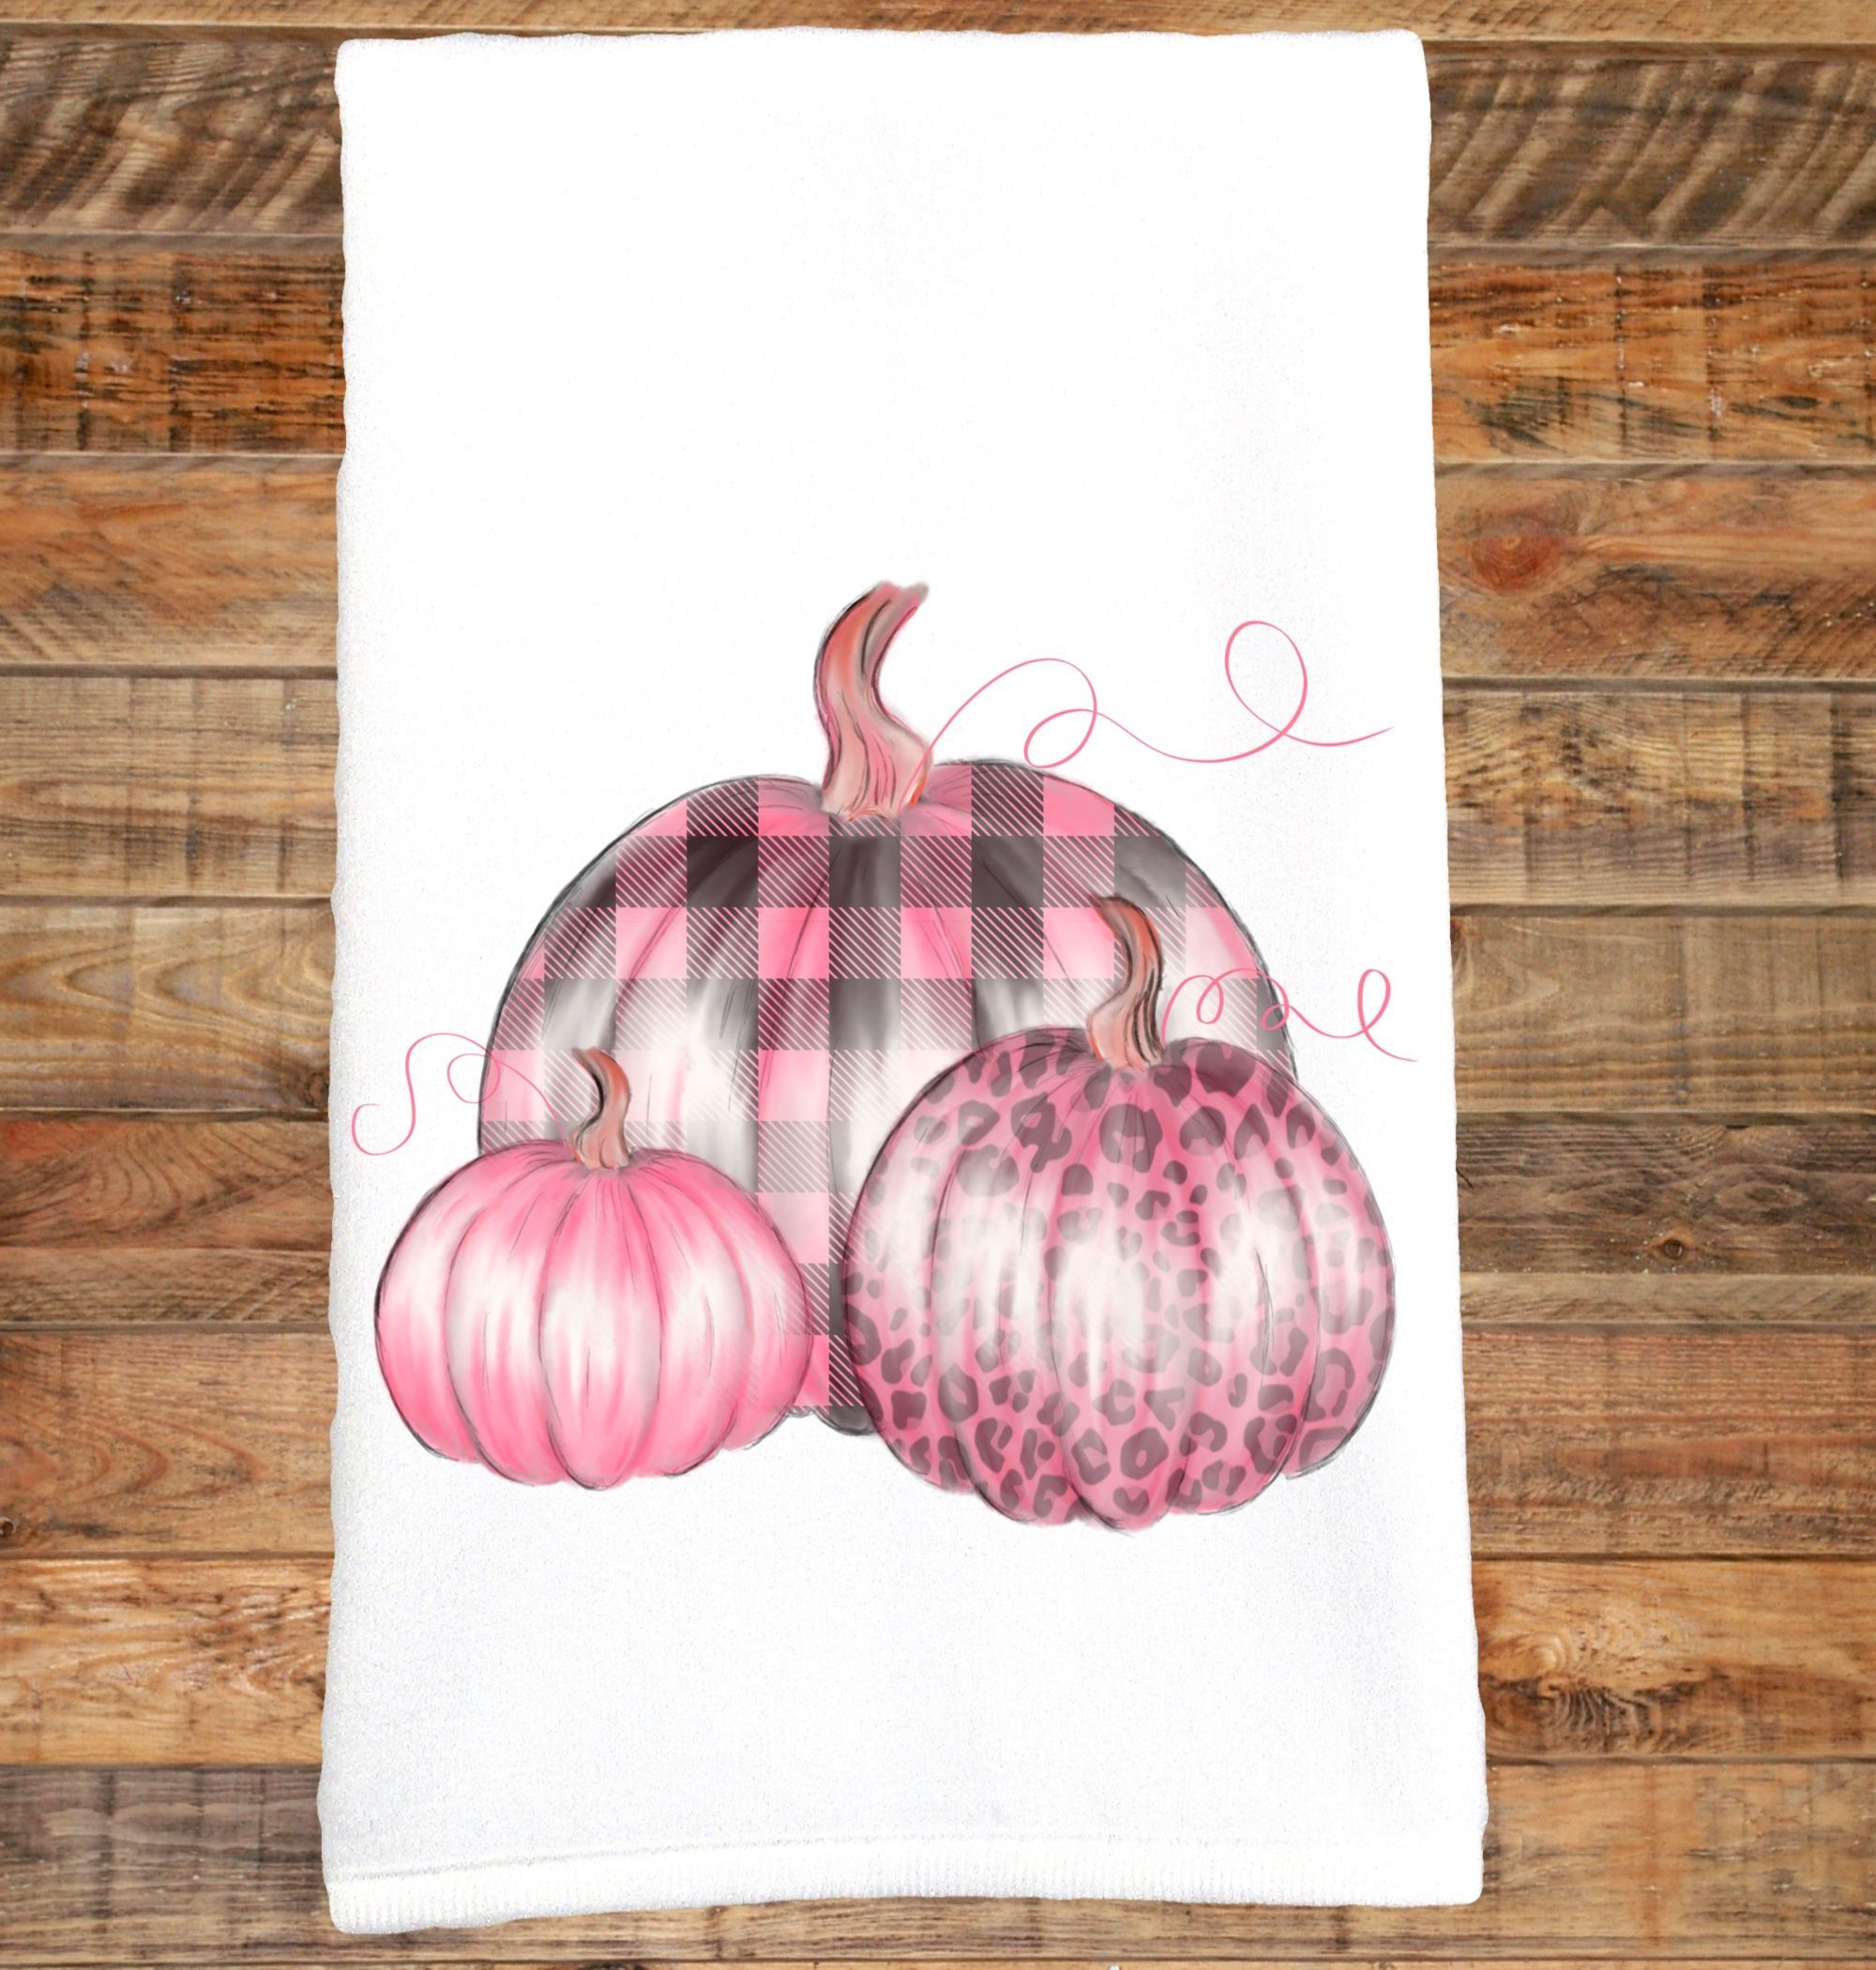 Pink Pumpkins, Breast Cancer, Wear Pink, Pink Buffalo Plaid, Pink Leopard, Pink in October, Pink for a Cure, Pink Ribbon, Cancer Survivor